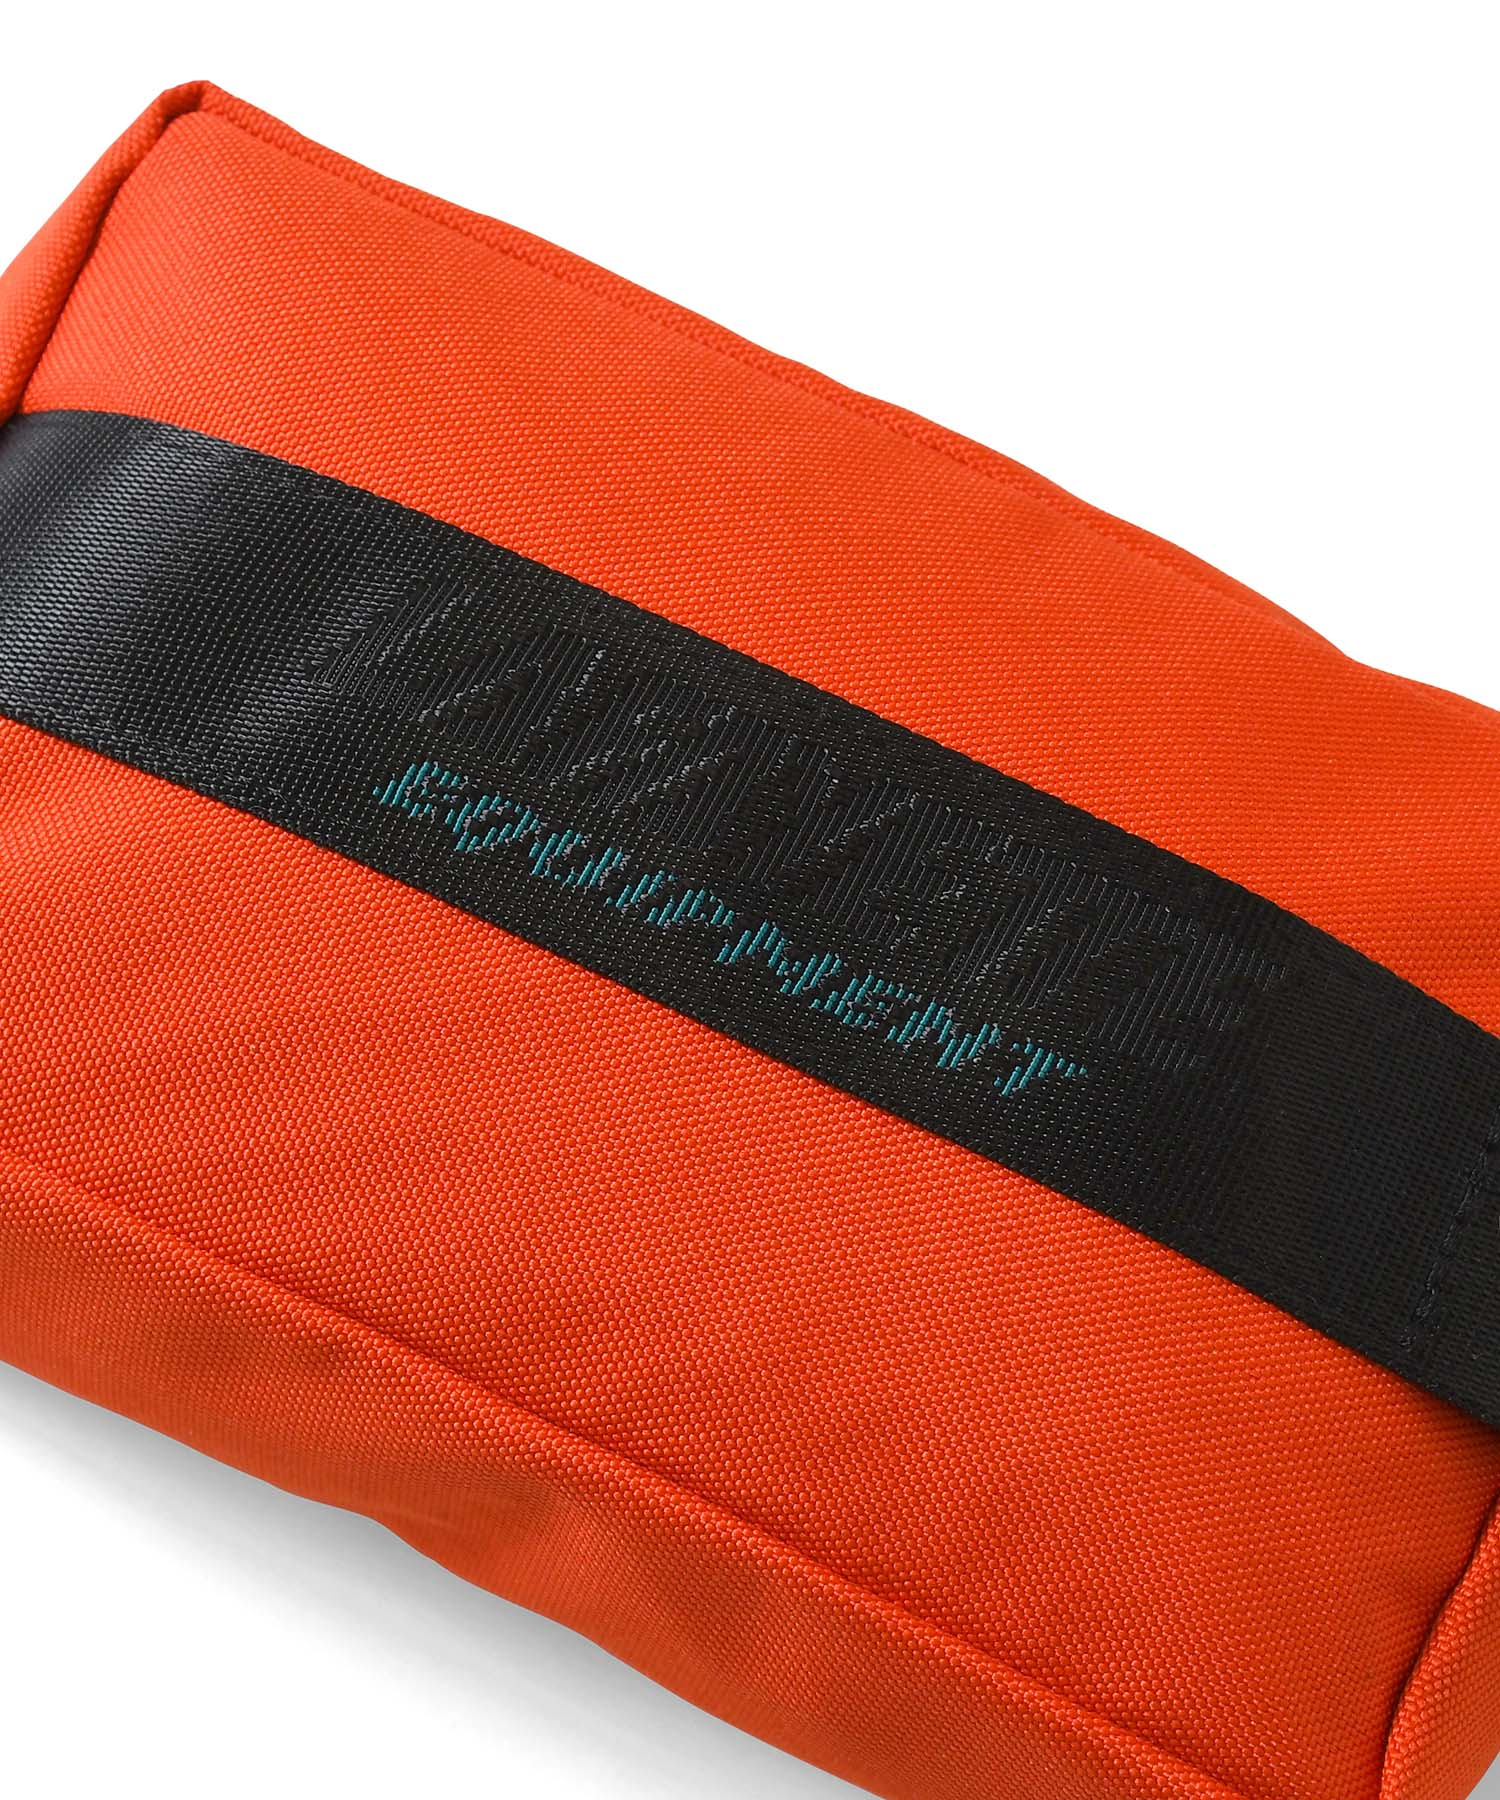 Lafayette EQUIPMENT LOGO NYLON POUCH LS201504 ORANGE